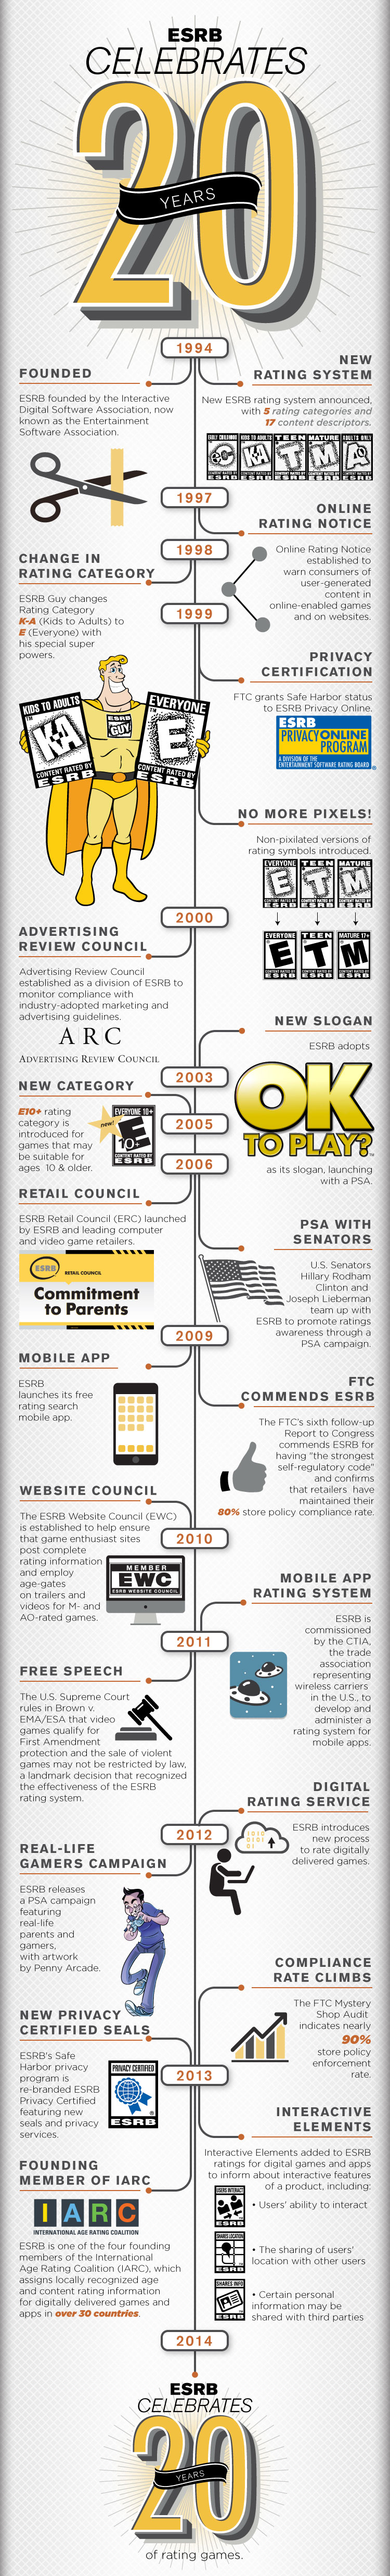 ESRB 20th Anniversary Infographic